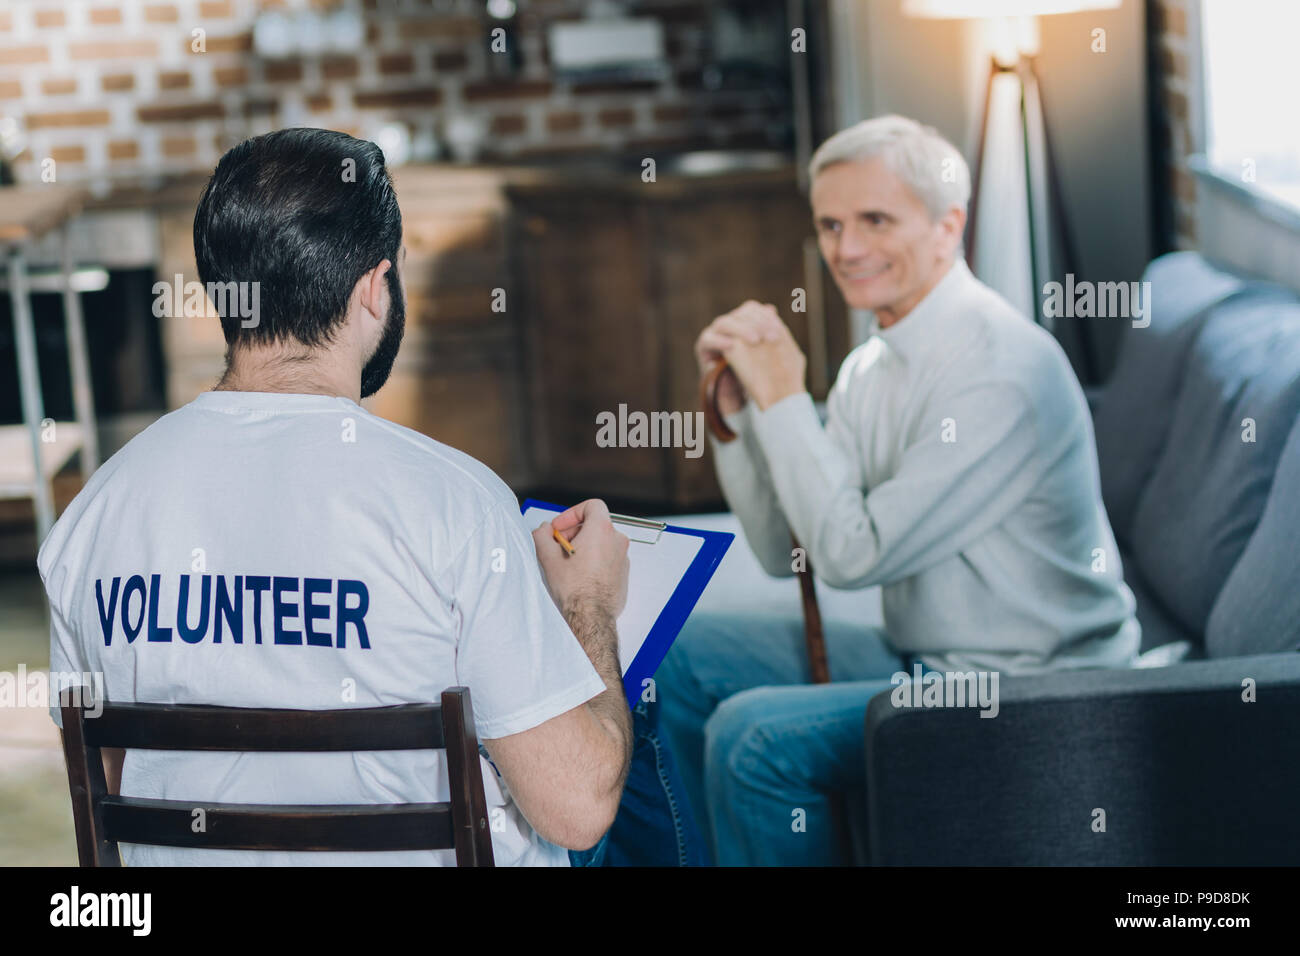 Inspired volunteer conducting a poll - Stock Image